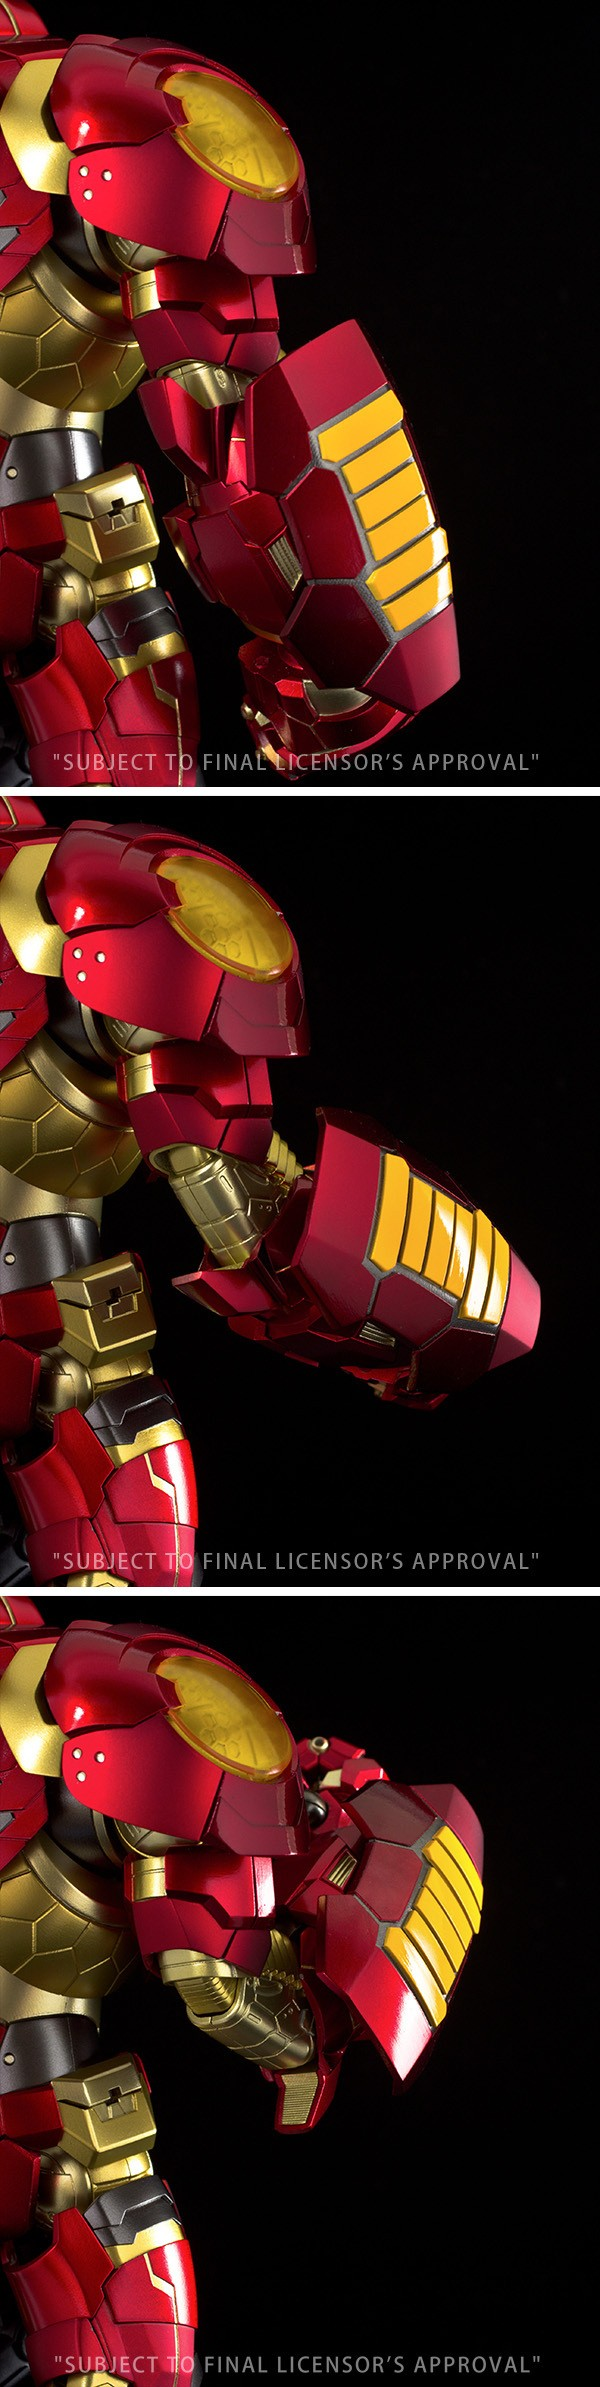 RE:EDIT IRON MAN #05 Hulk Buster